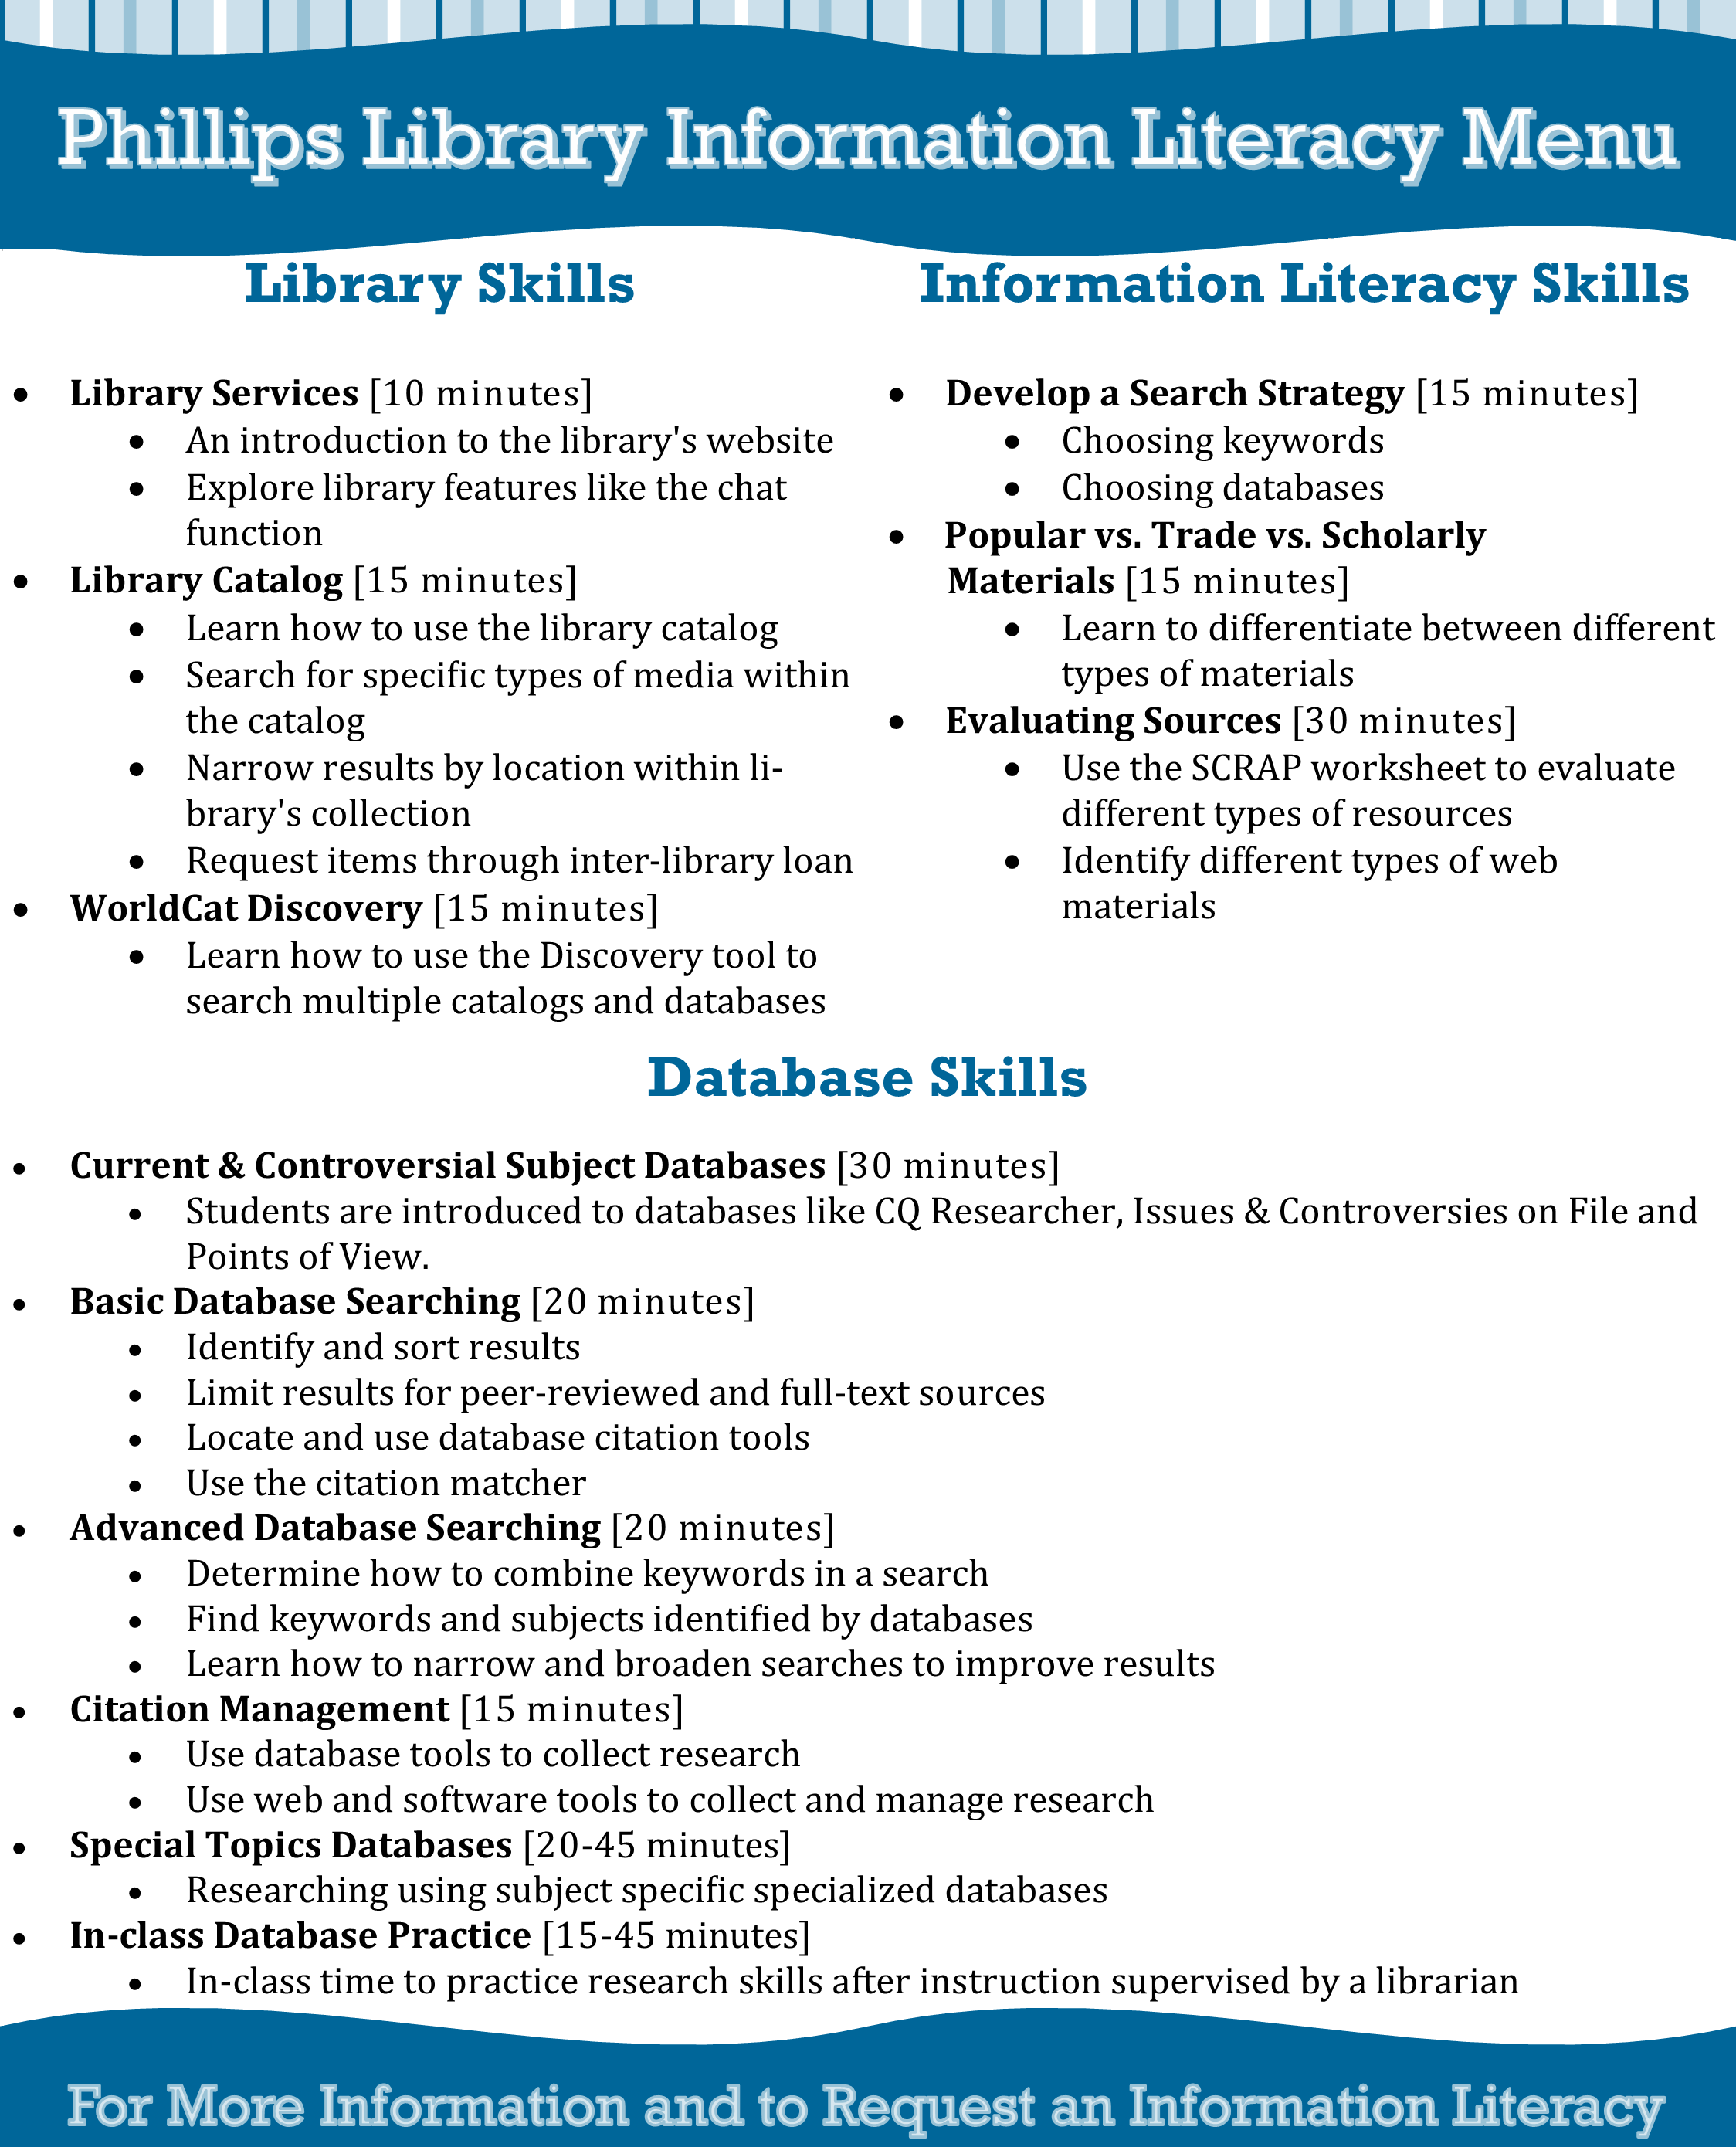 Information Literacy Menu